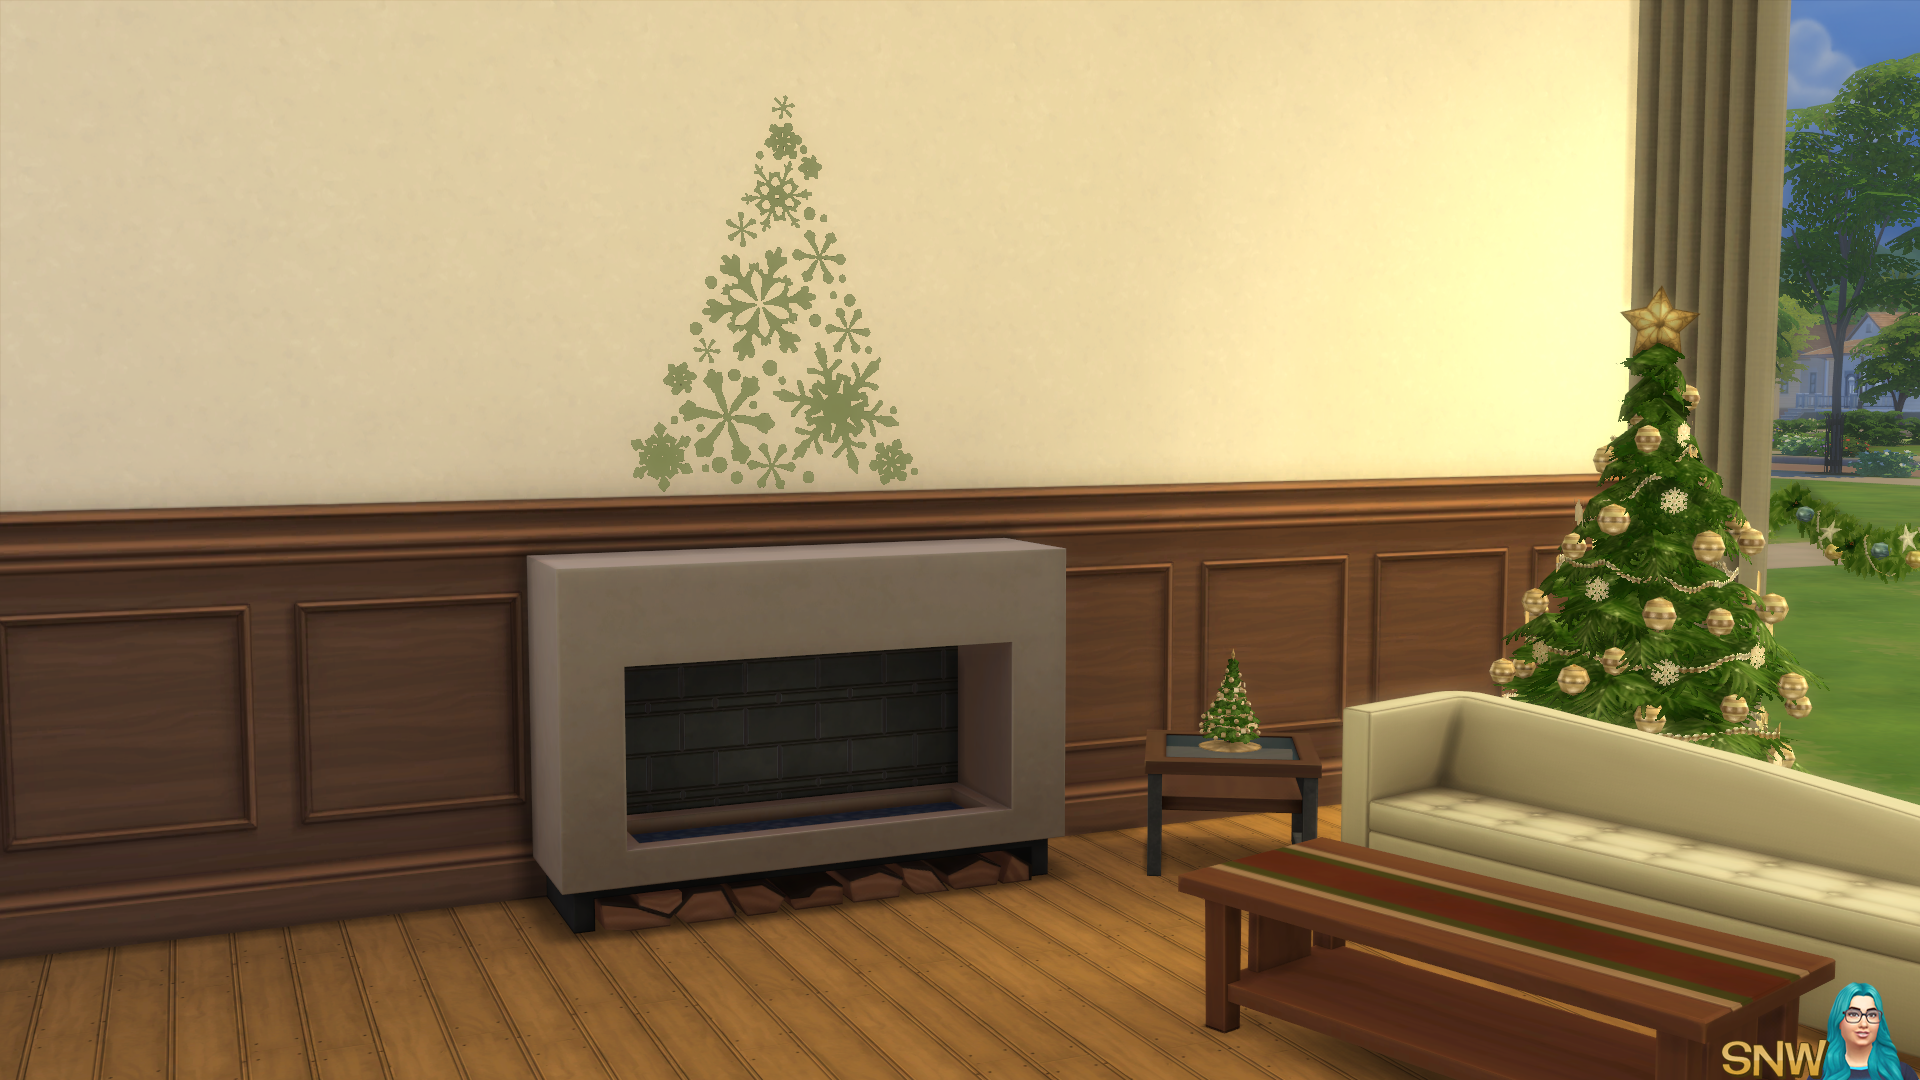 Christmas 2015 Decals and Borders | SNW | SimsNetwork.com